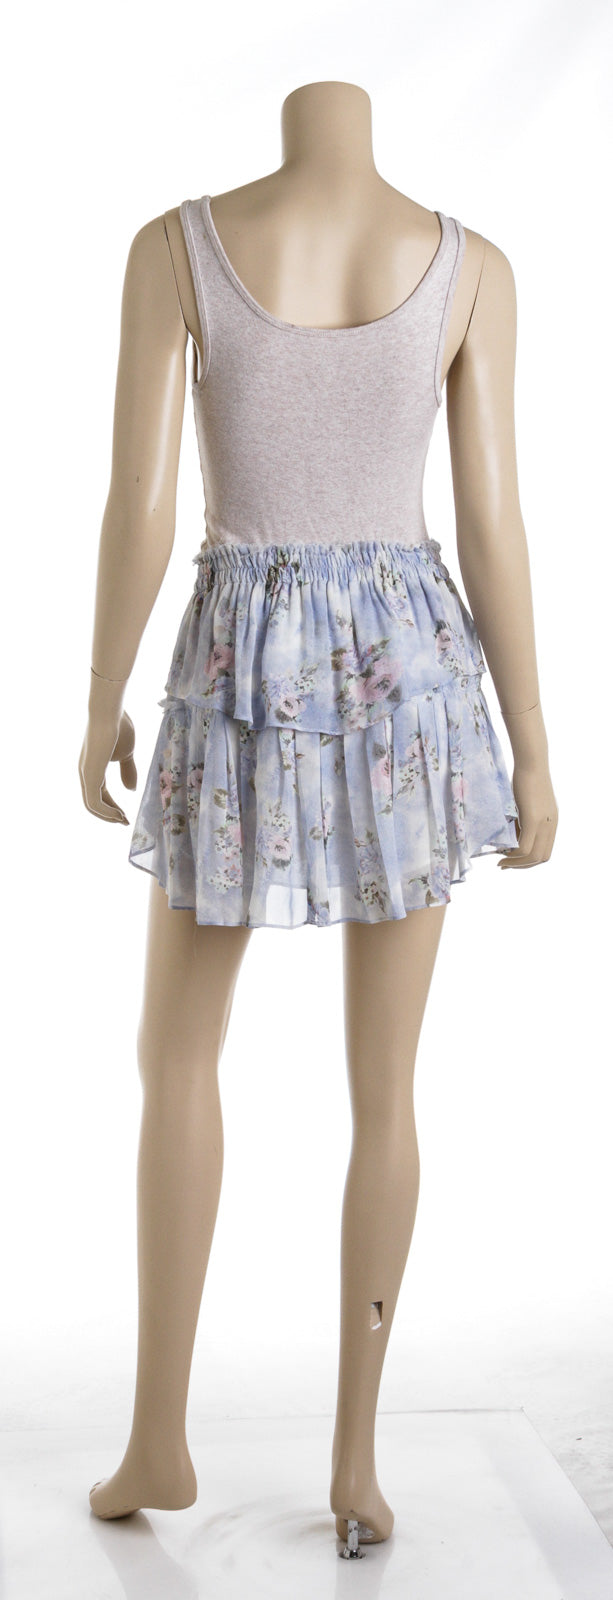 LoveshackFancy Floral Blue Silk Mini Ruffle Skirt (Size XS)